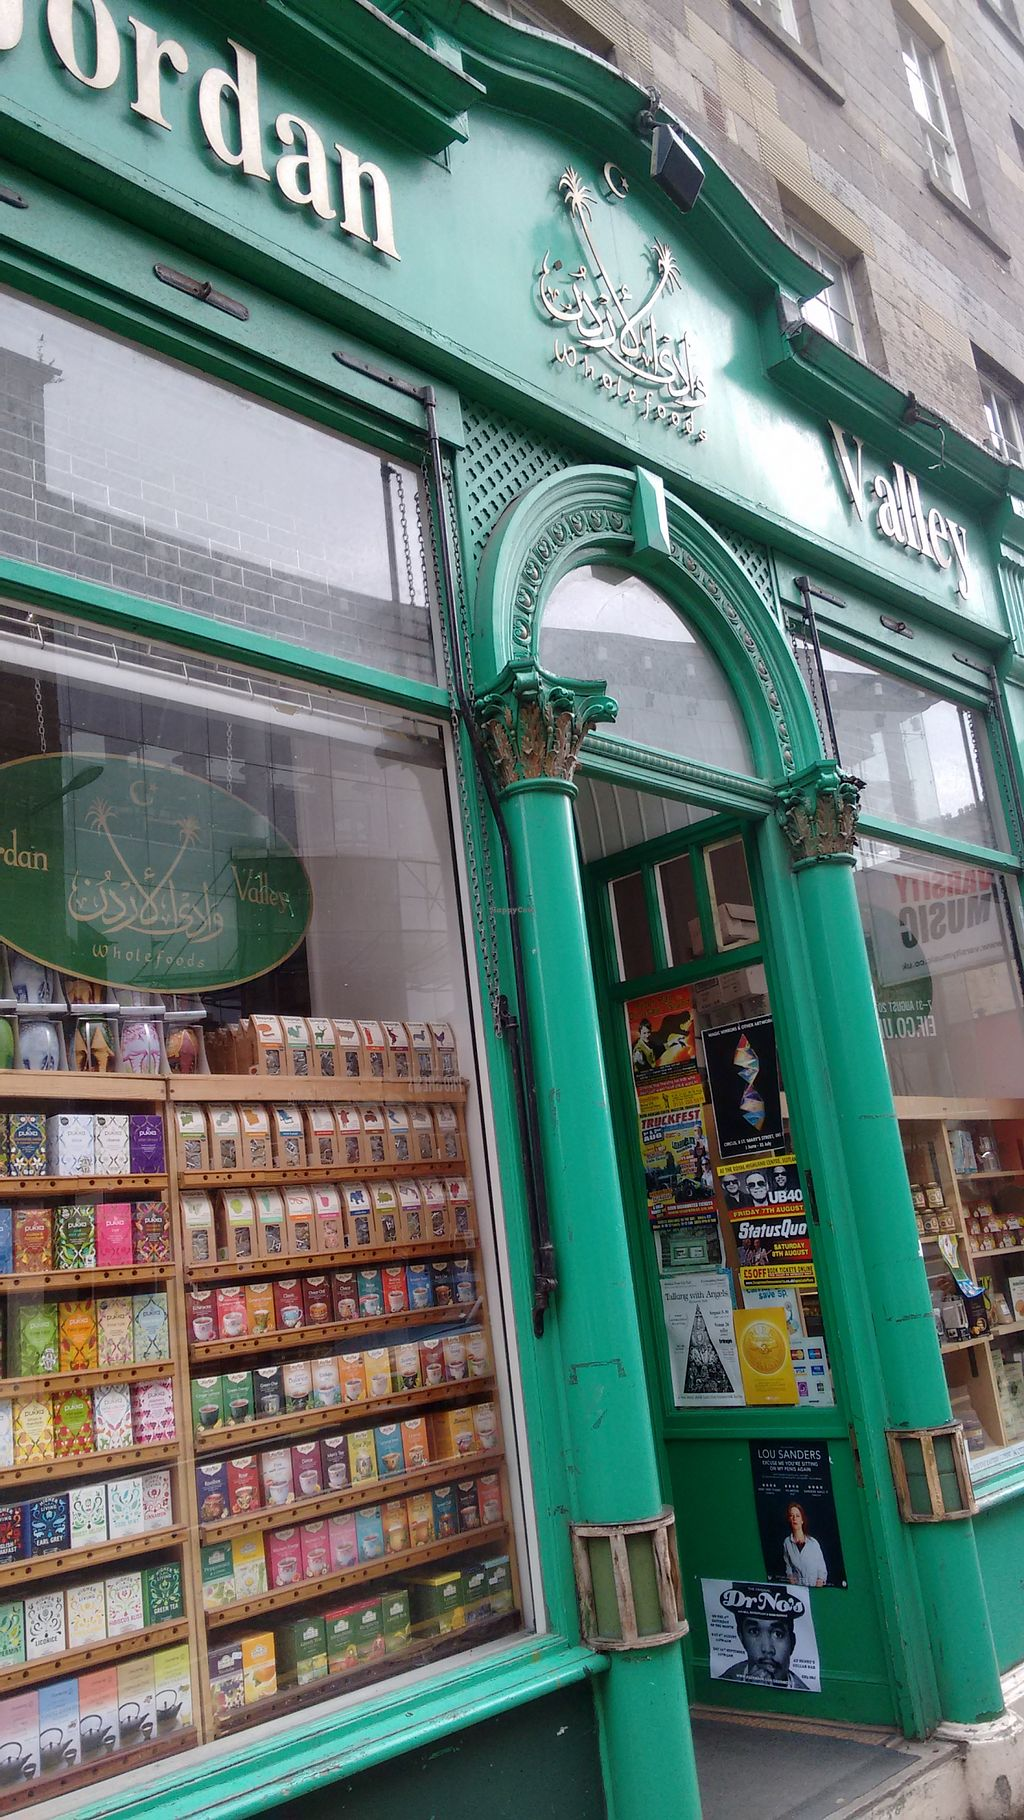 Jordan Valley Wholefoods - Edinburgh Health-food-store Restaurant ...